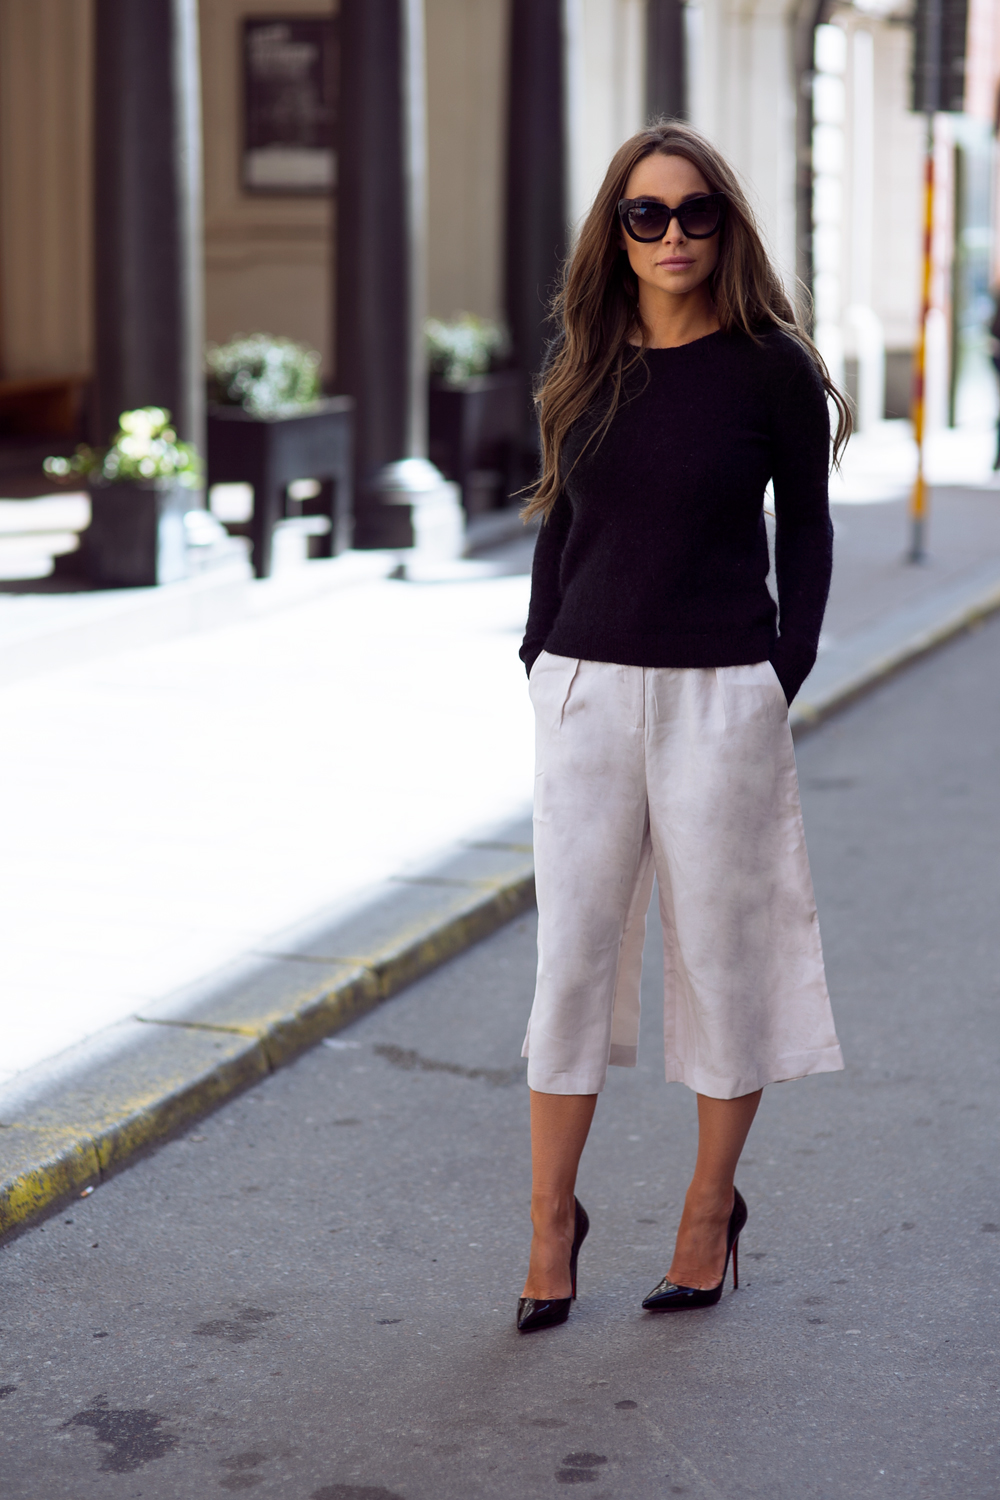 Johanna Olsson is wearing a pair of creme Dagmar culotte shorts for spring